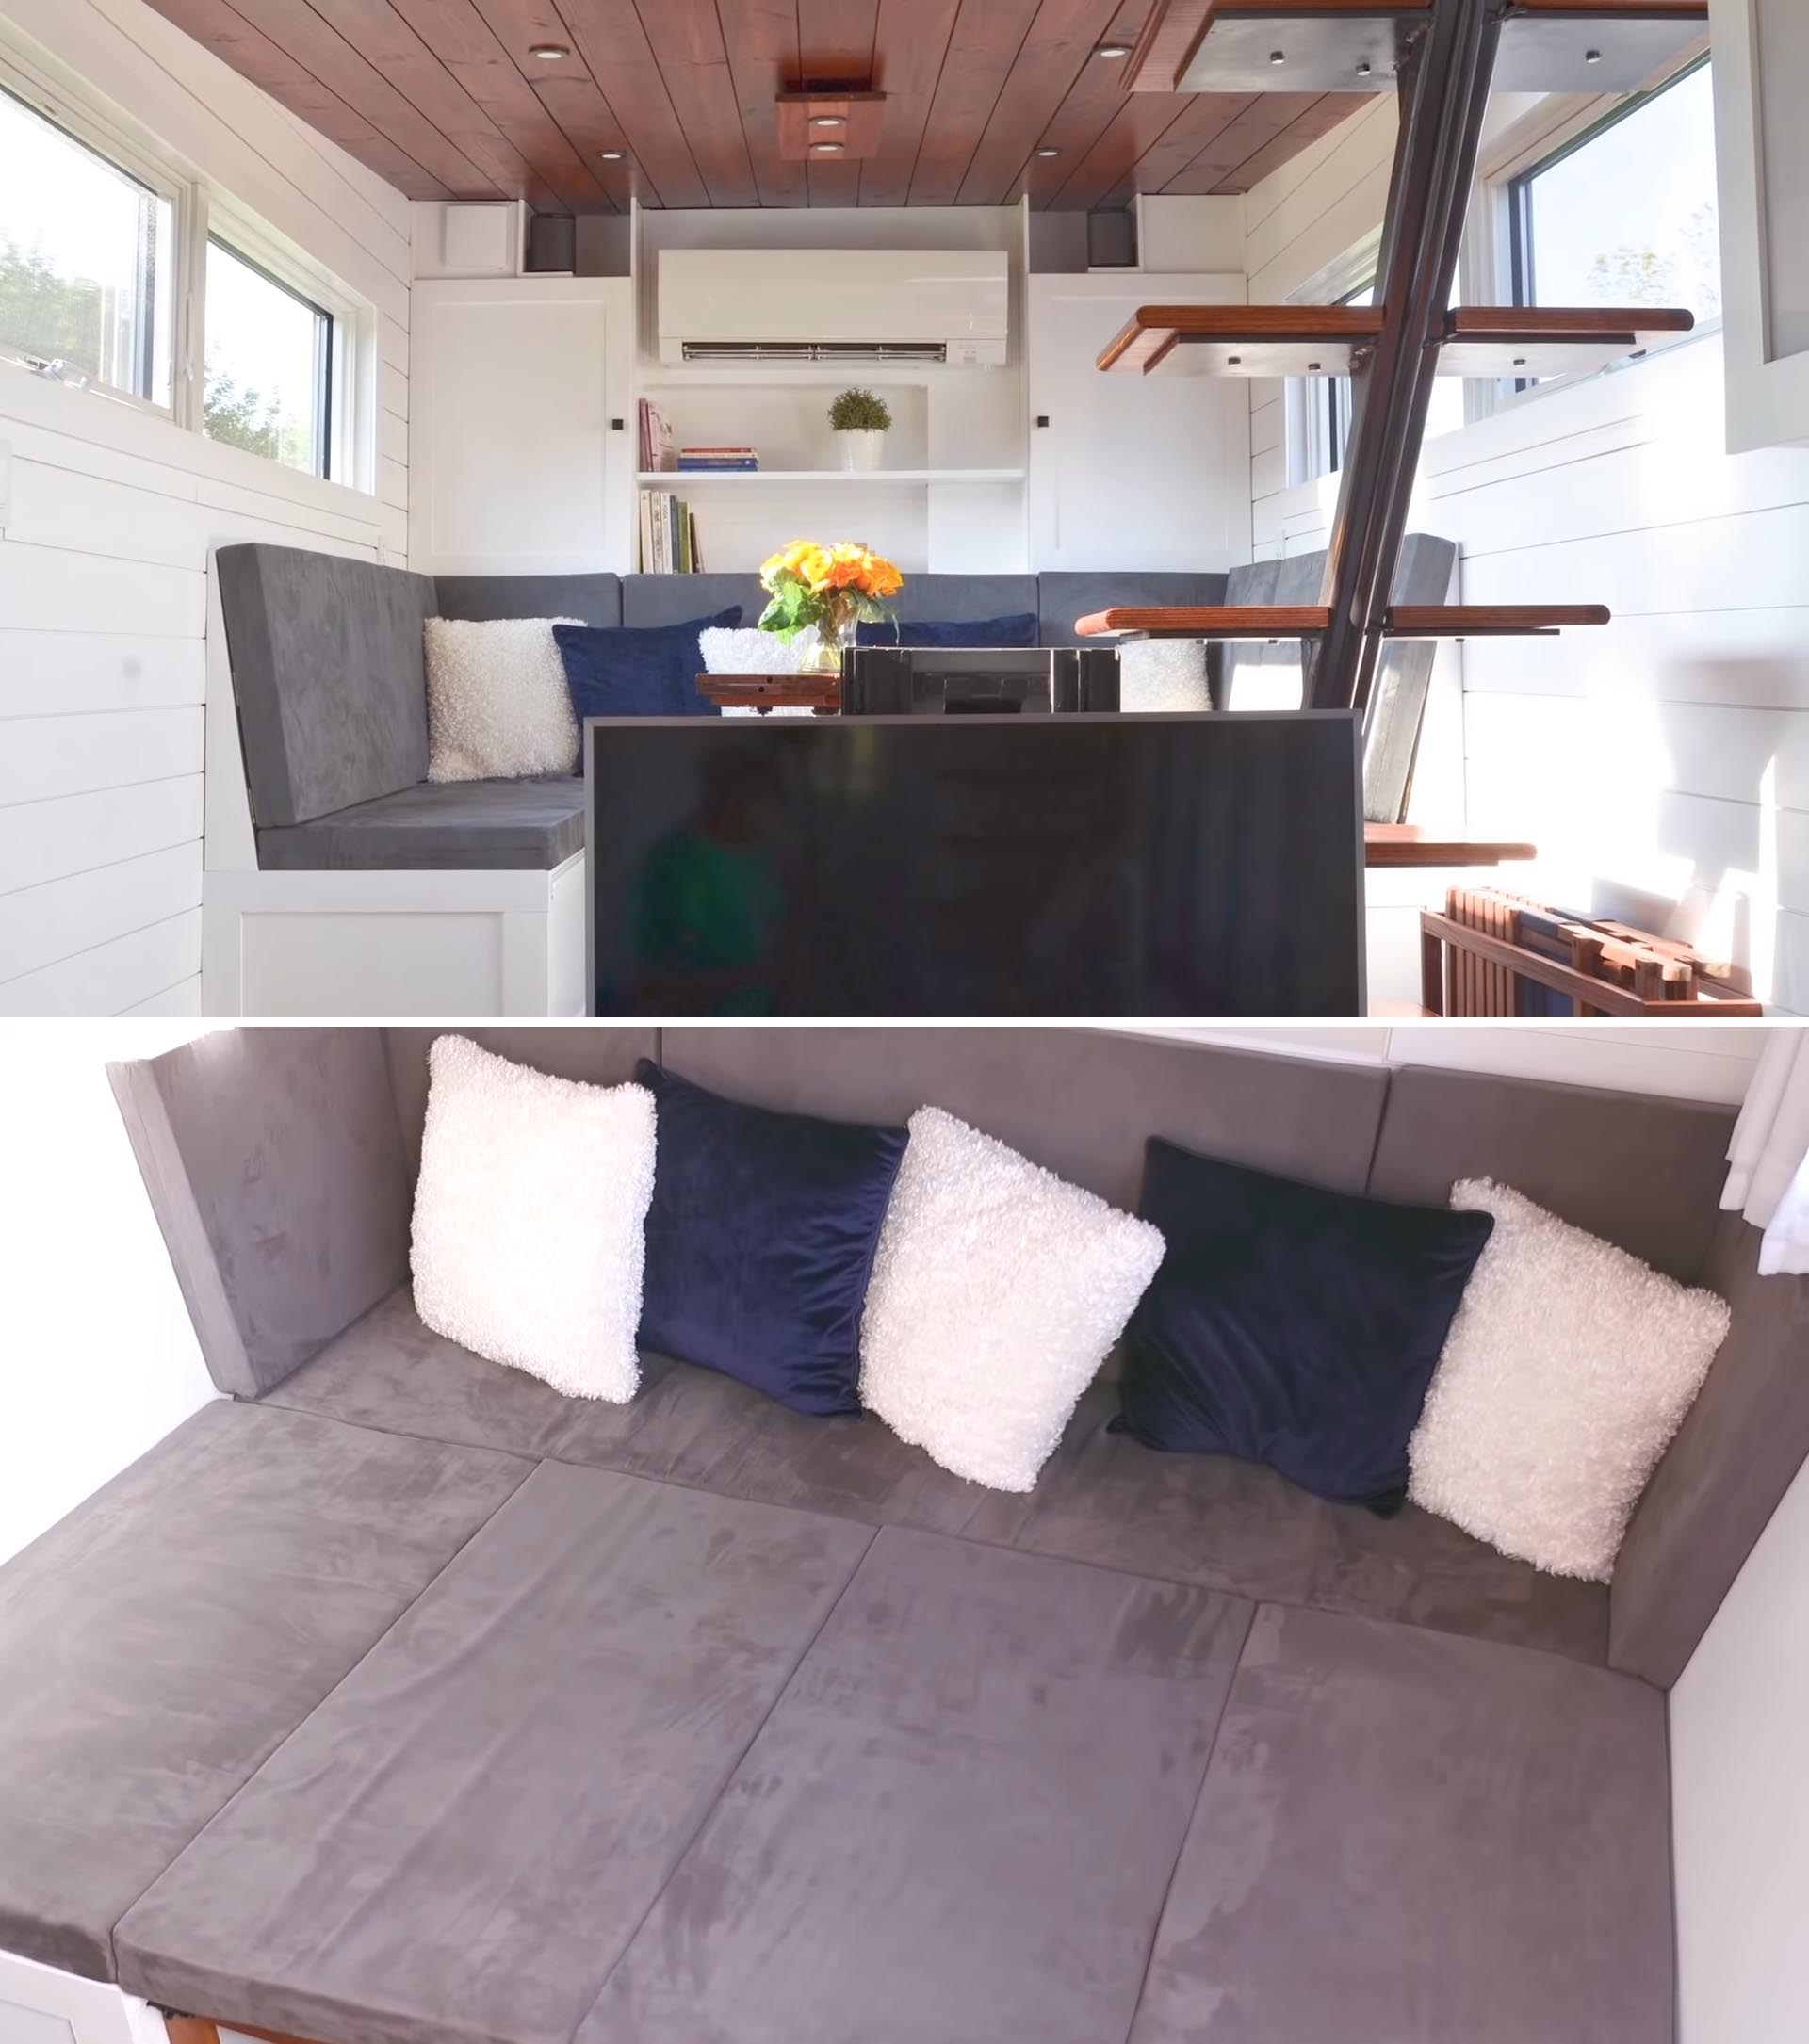 A tiny house living room with a couch that transforms into a queen sized bed.